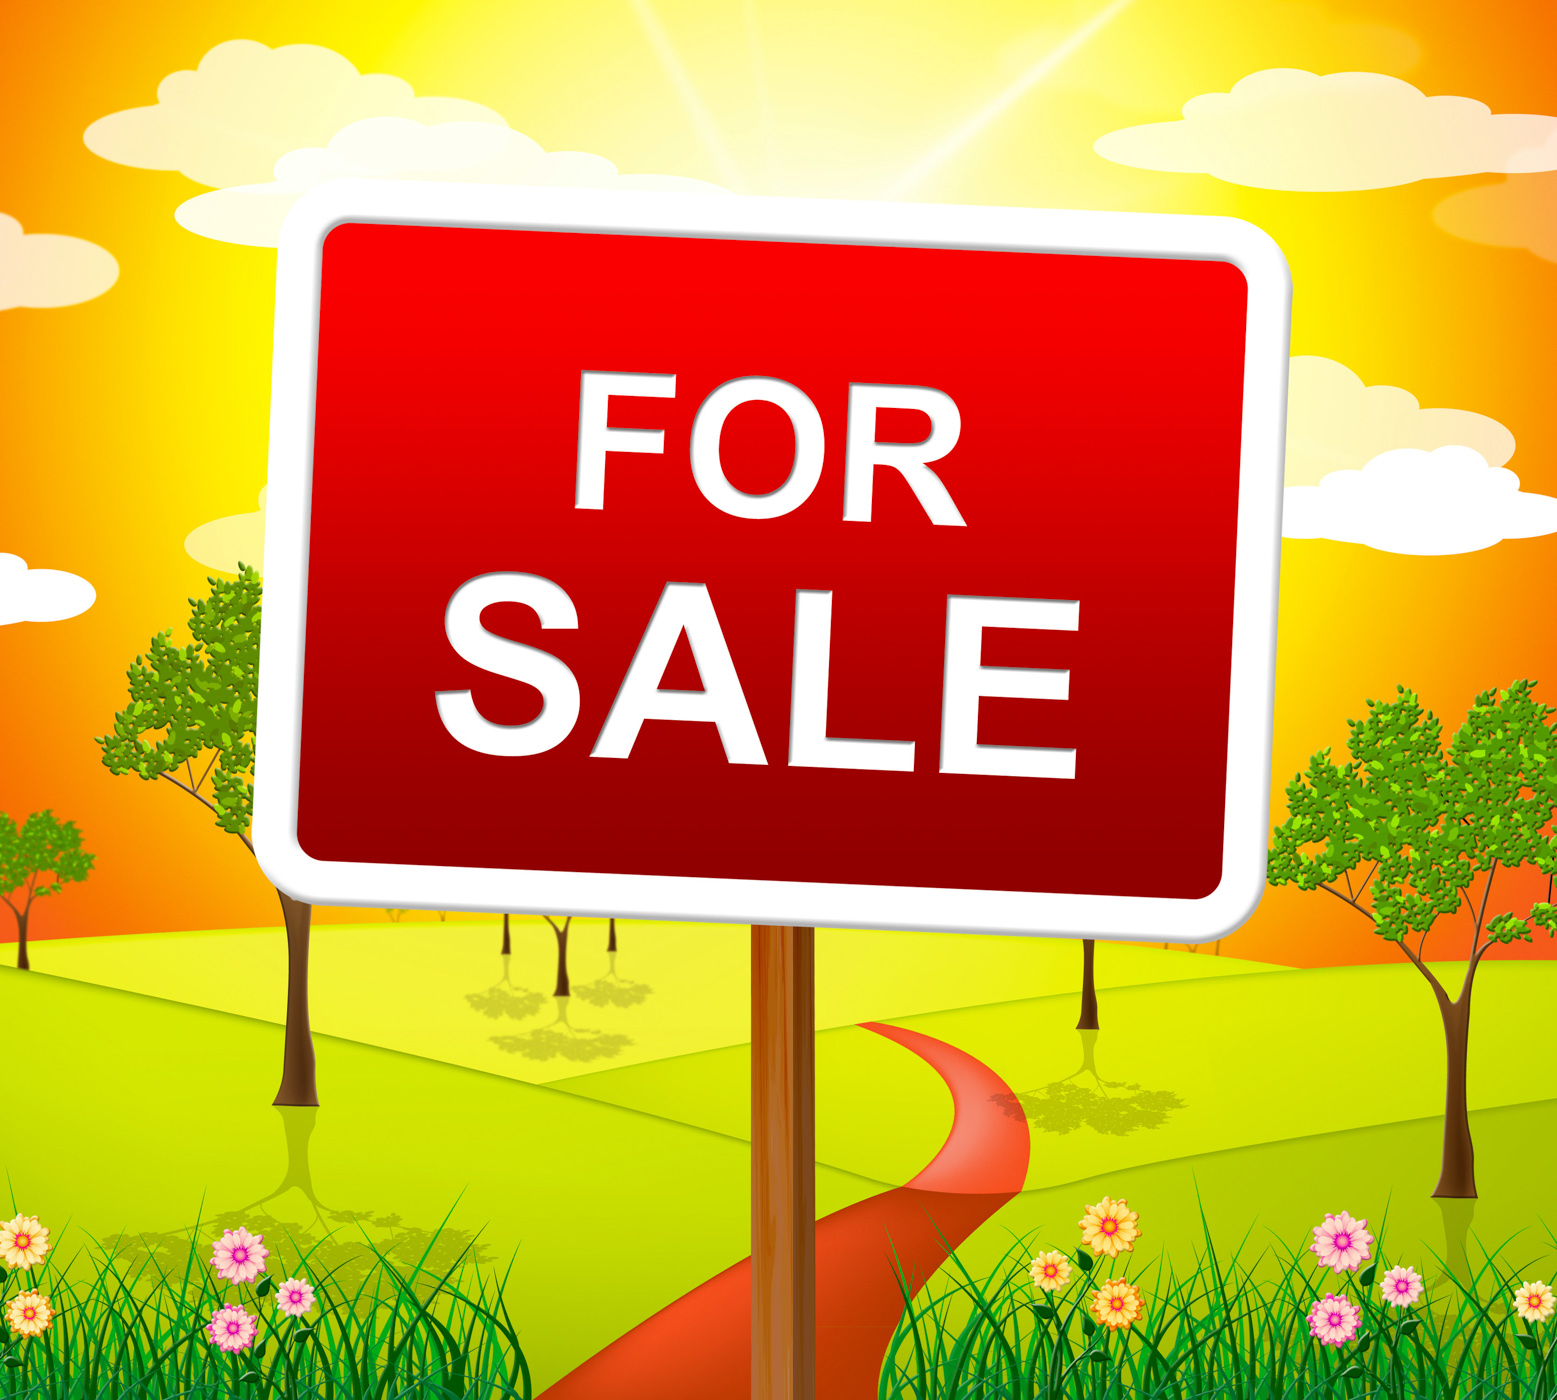 For Sale Indicates Real Estate Agent And Placard, Property, Signboard, Sign, Selling, HQ Photo